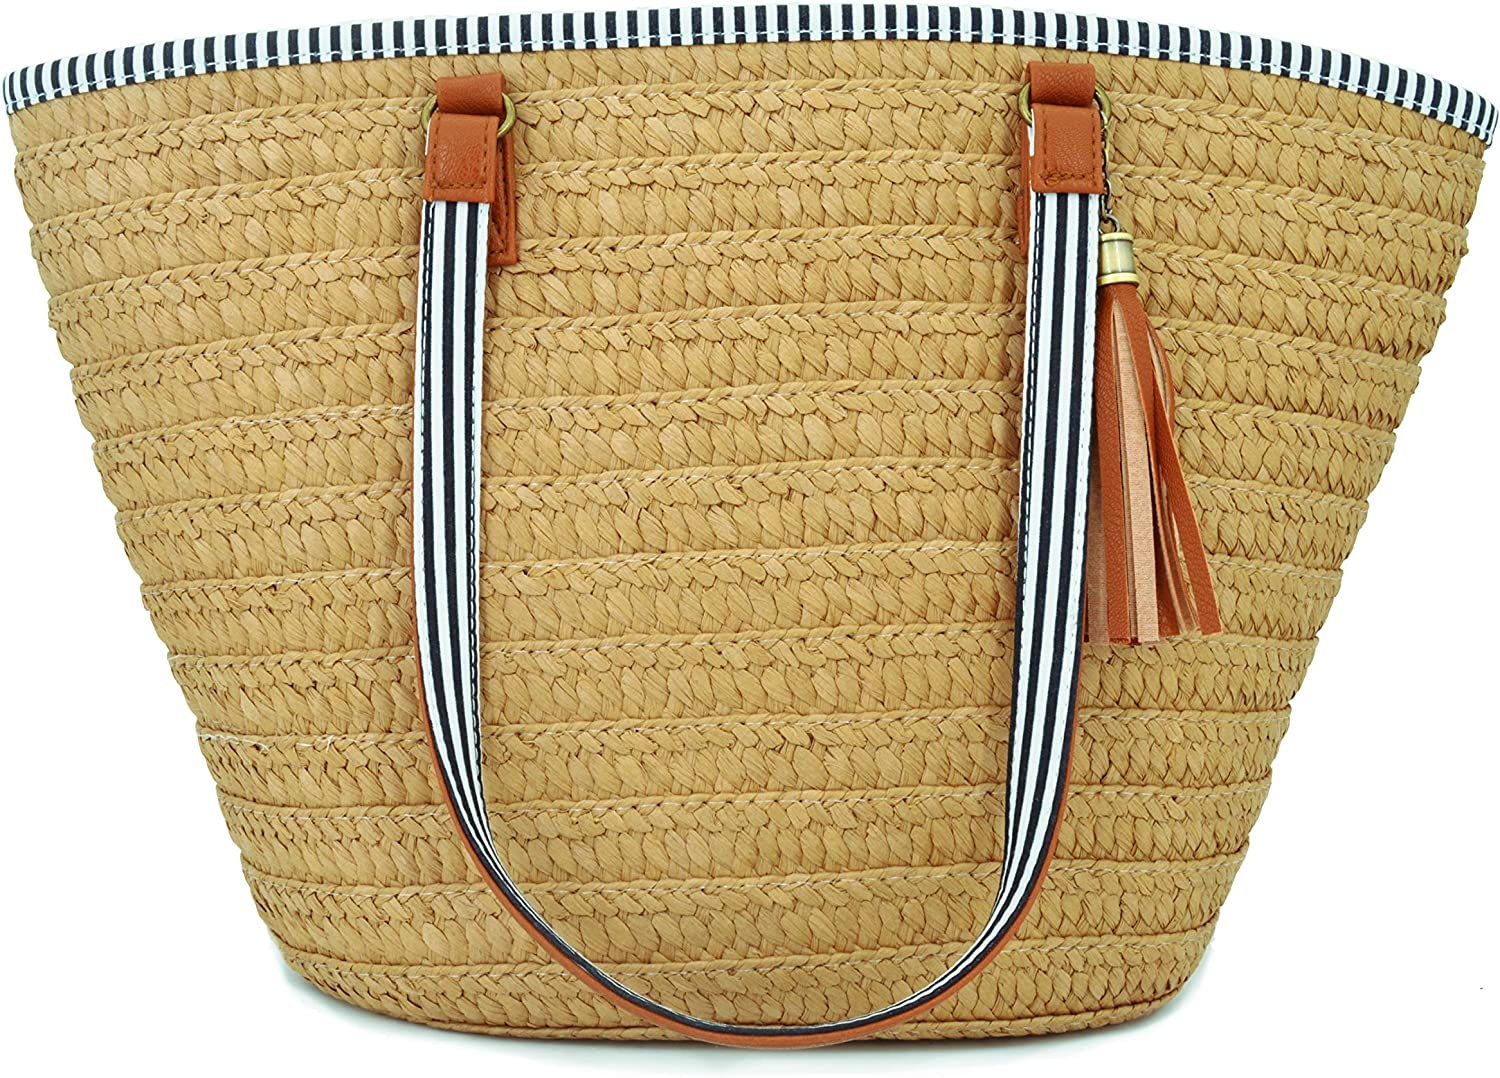 AGNETA Women's Simple and Fashionable Tassel Tote OneShoulder Straw Woven Shoulder Bag